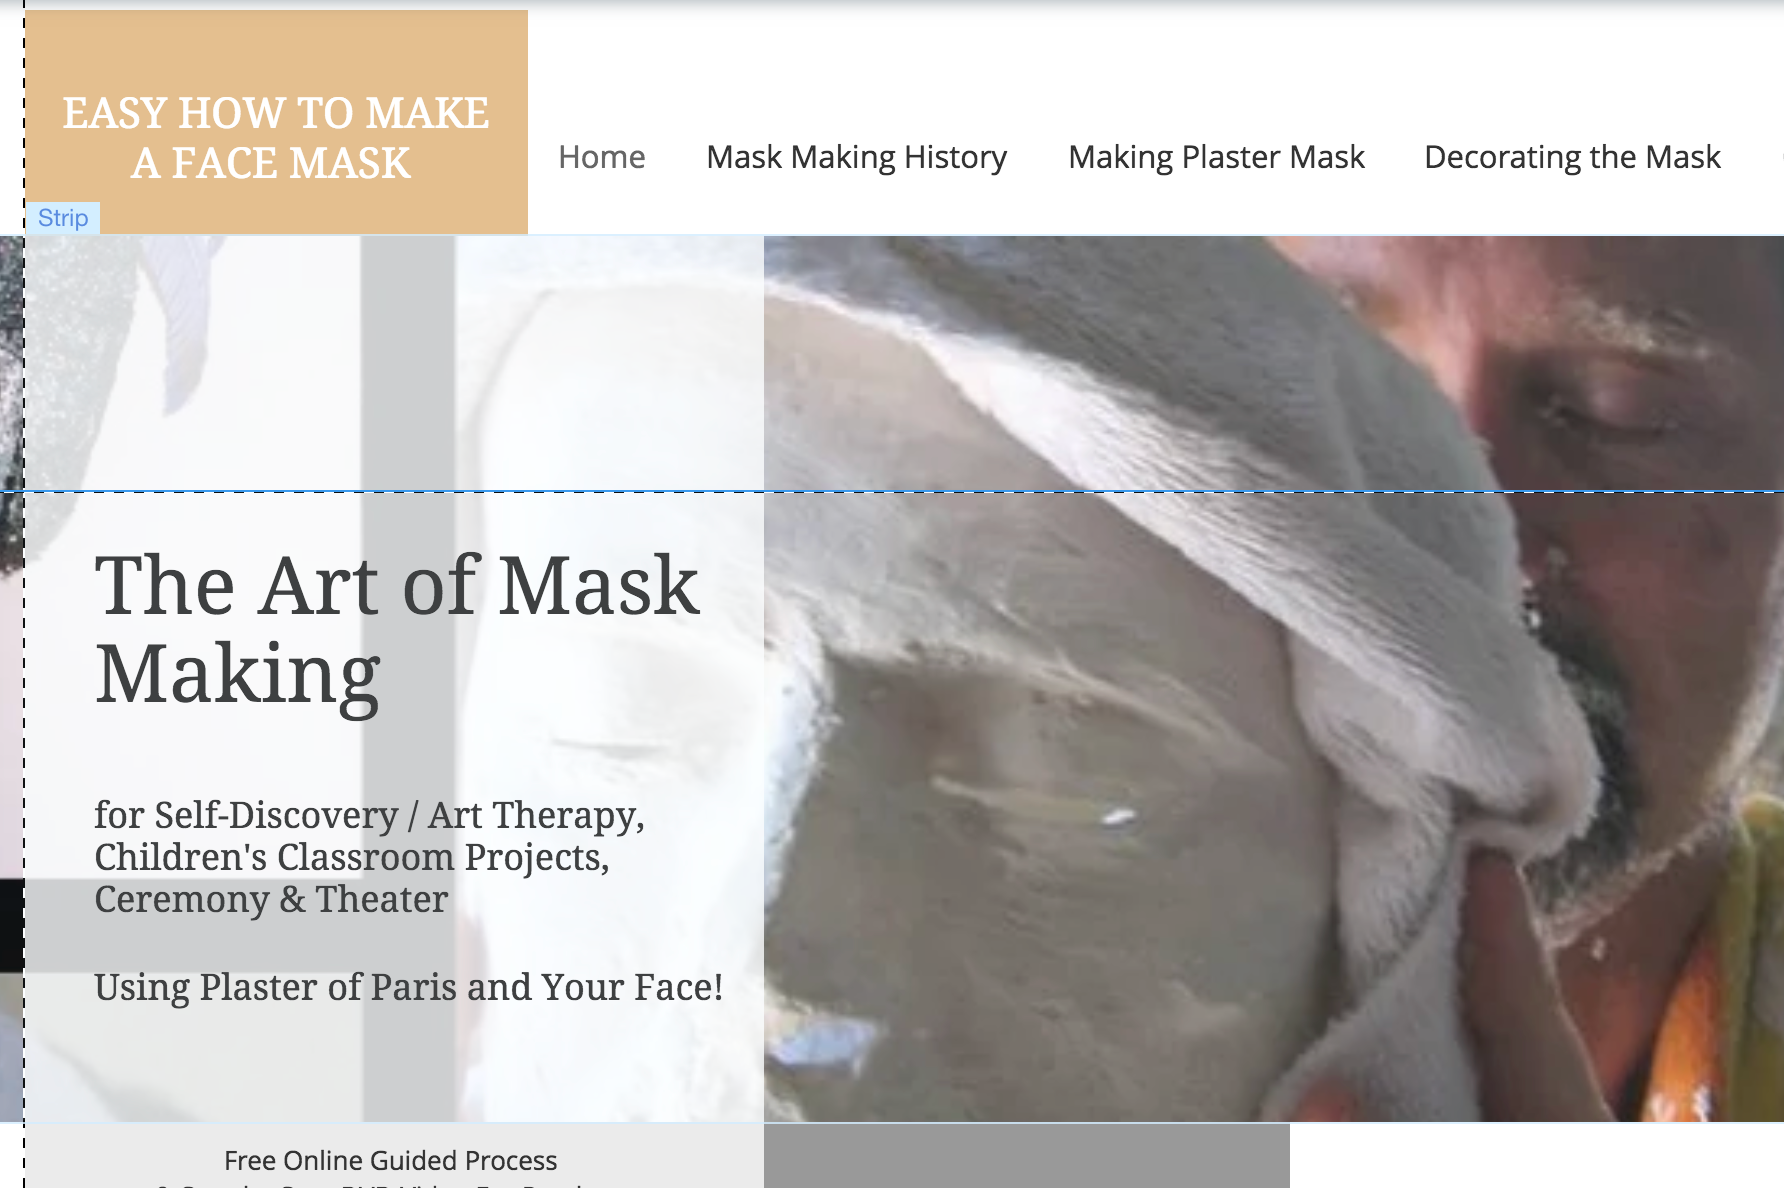 make a face mask | plaster mask making | how to instruction